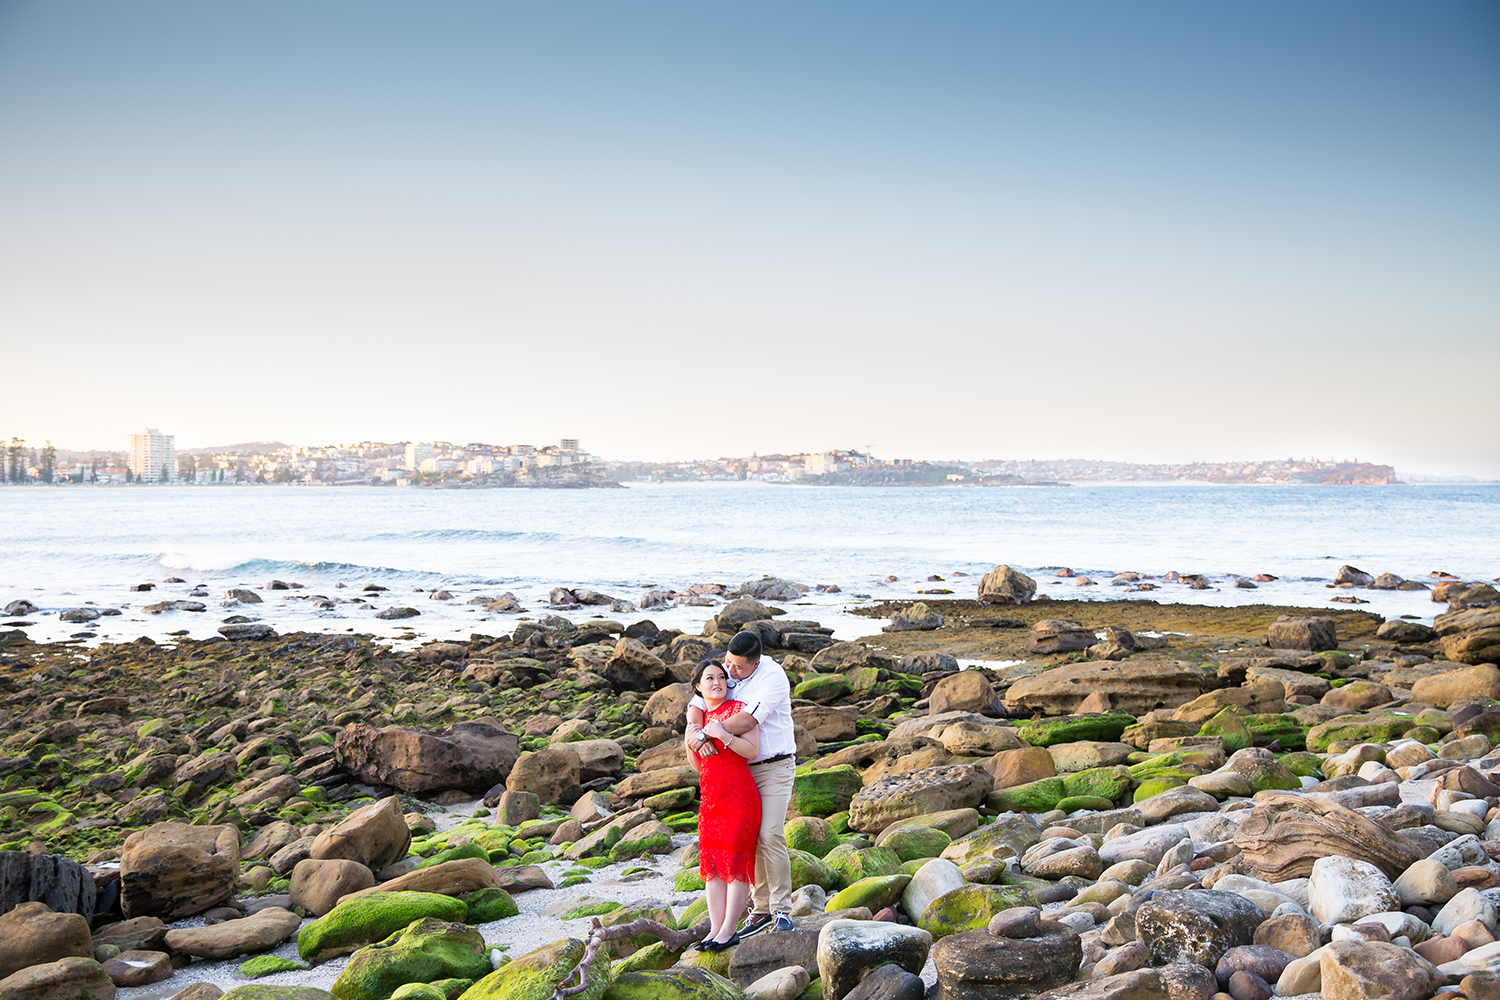 Shelly Beach Manly Pre-Wedding Engagement Session - jennifer Lam Photography (28).jpg